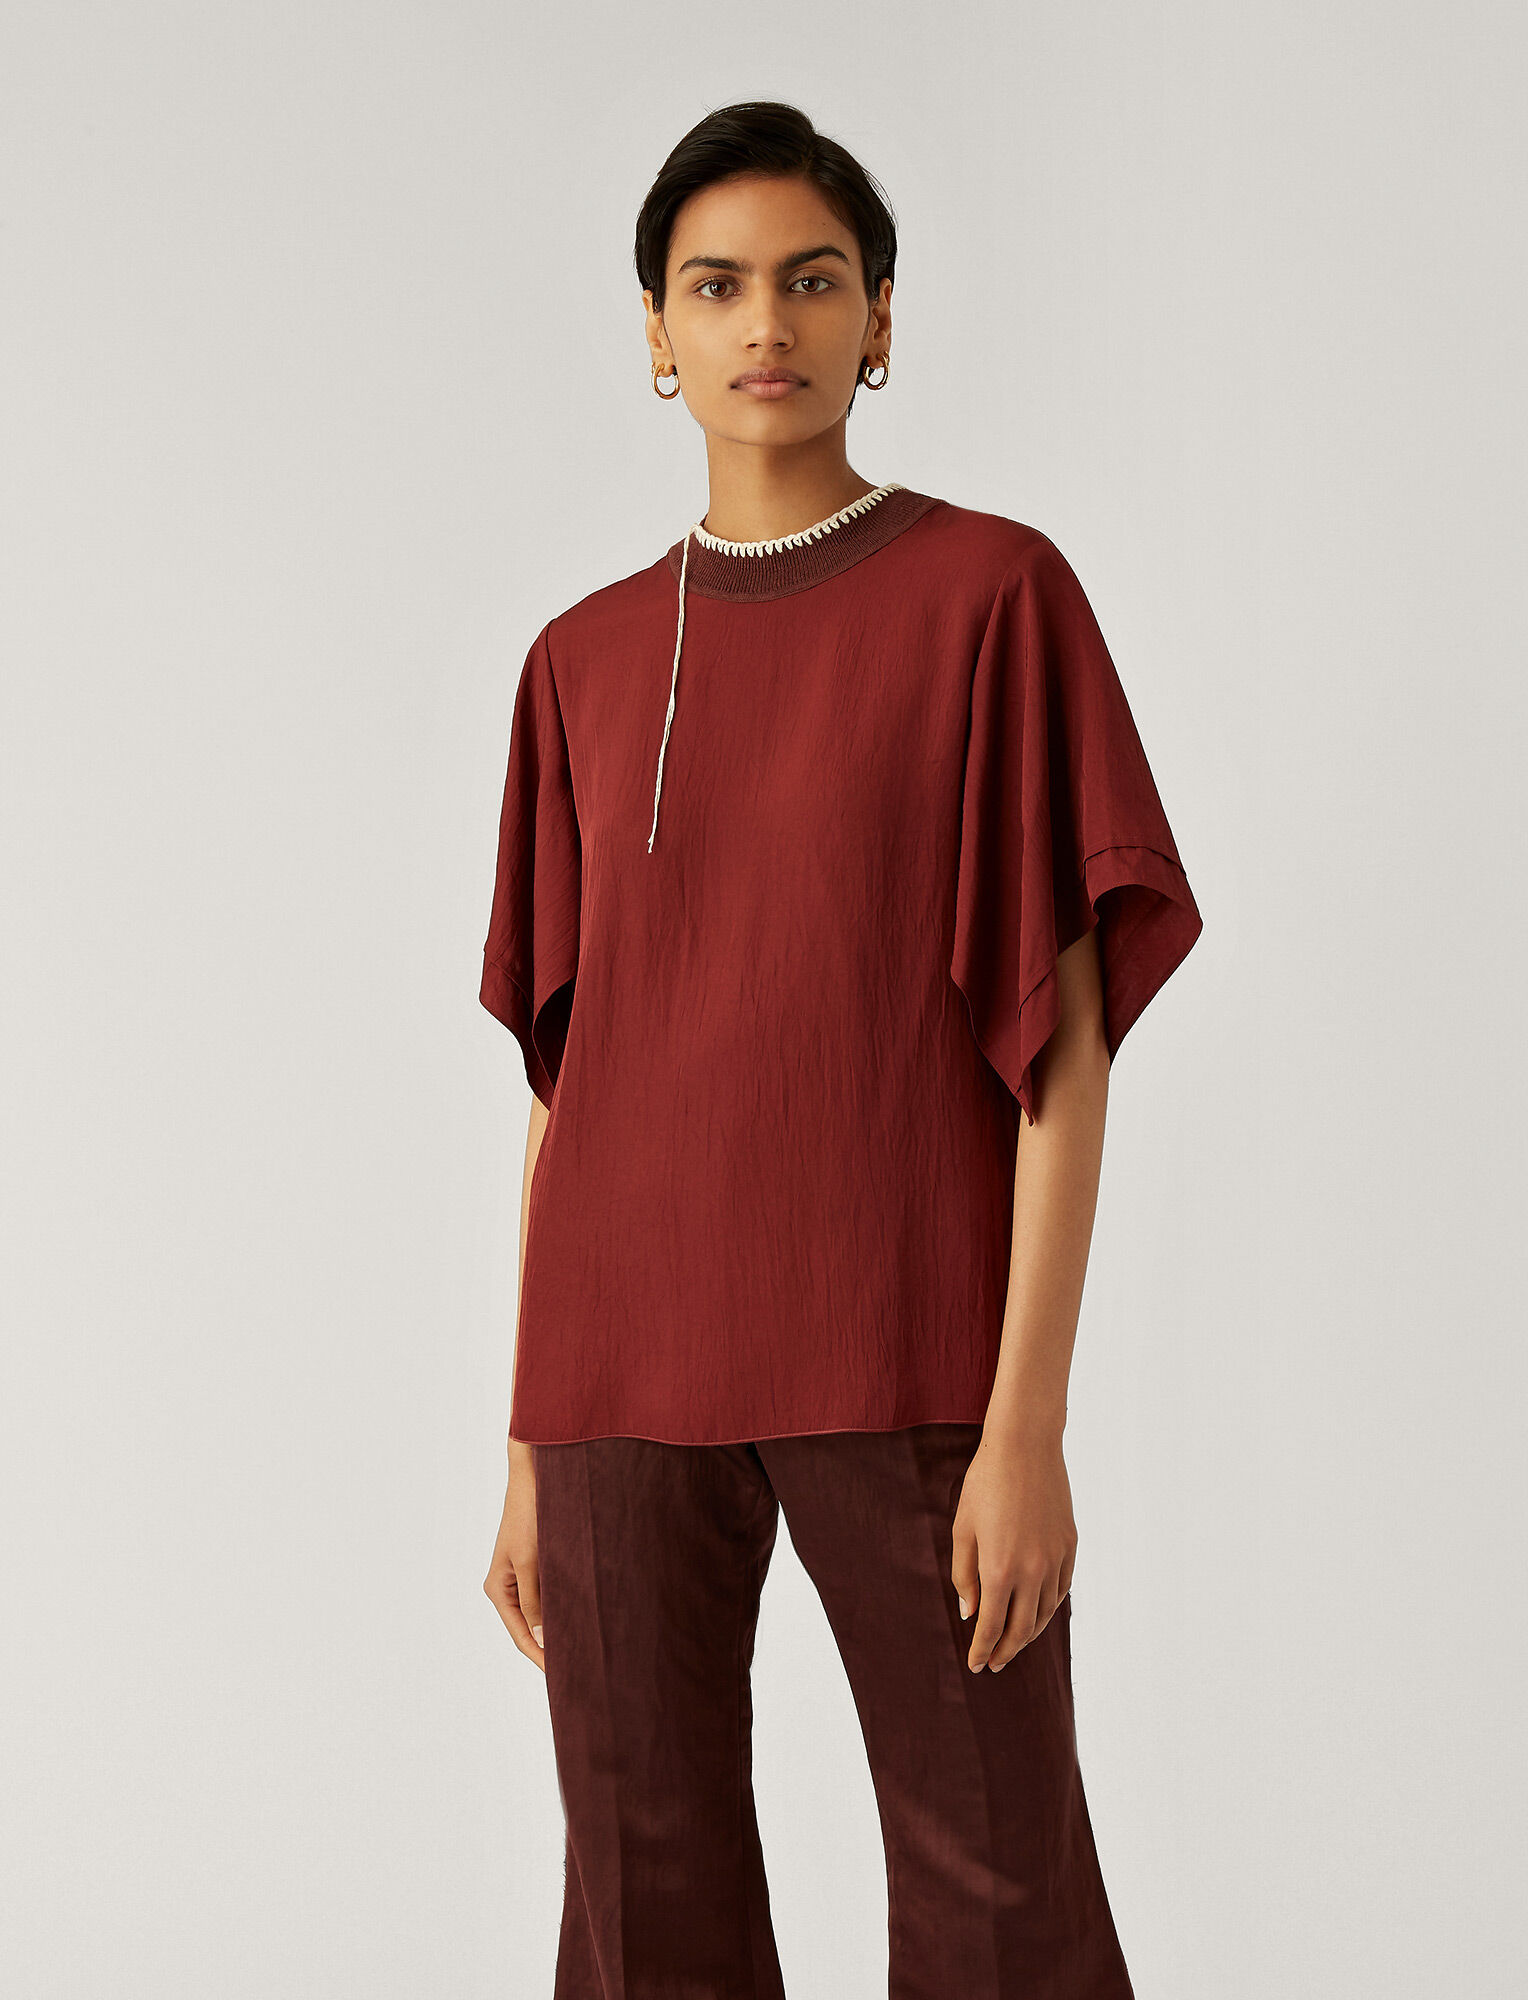 Joseph, Baila Washed Twill Blouse, in MERLOT